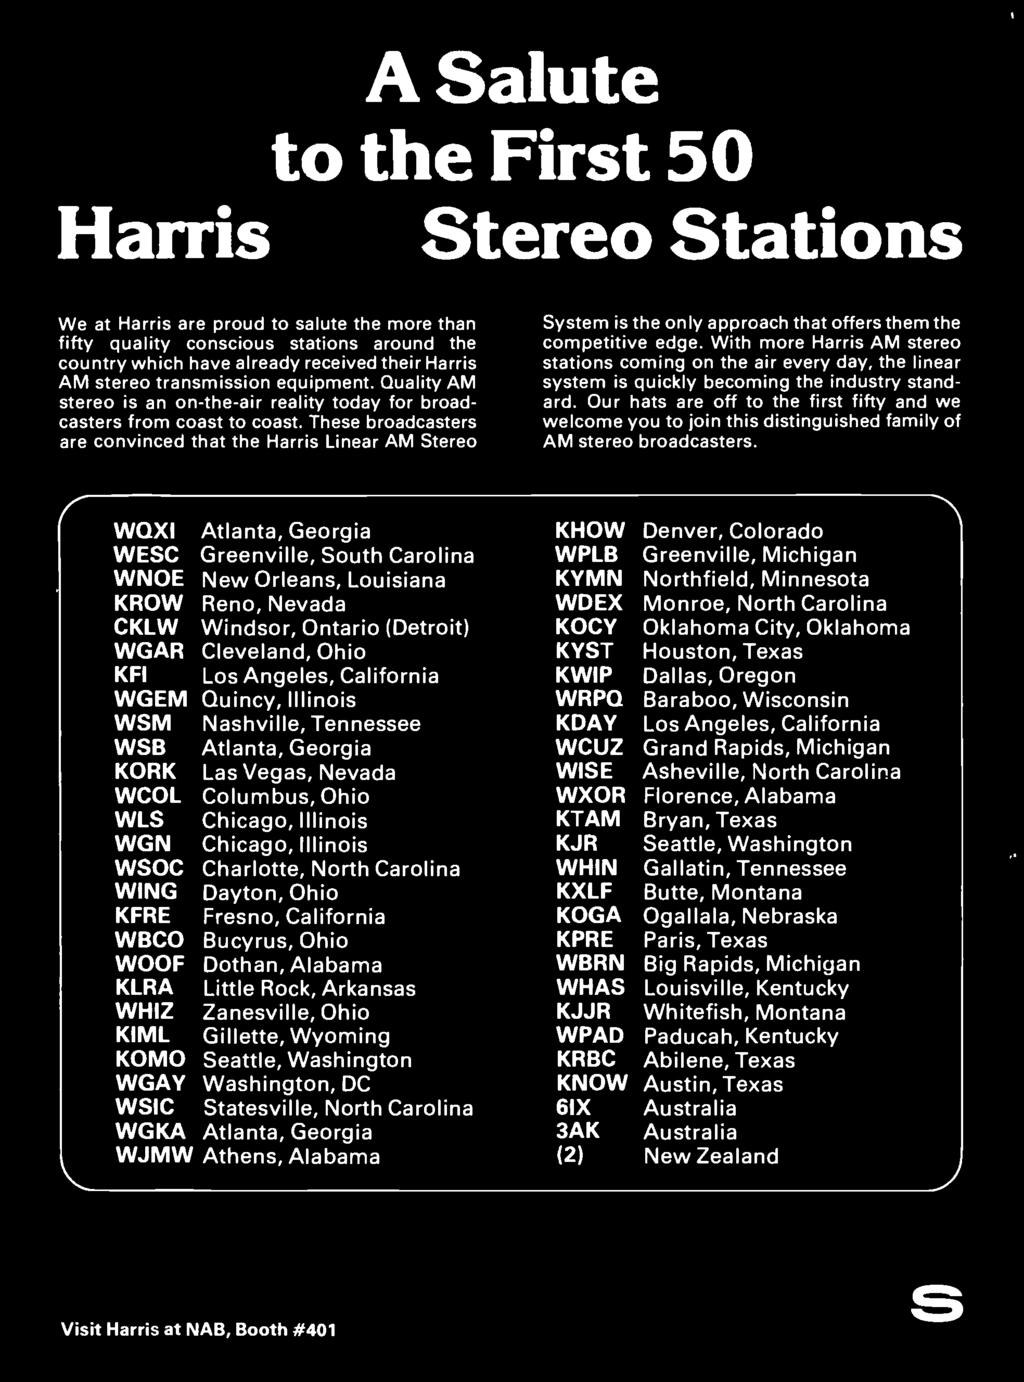 These broadcasters are convinced that the Harris Linear AM Stereo System is the only approach that offers them the competitive edge.